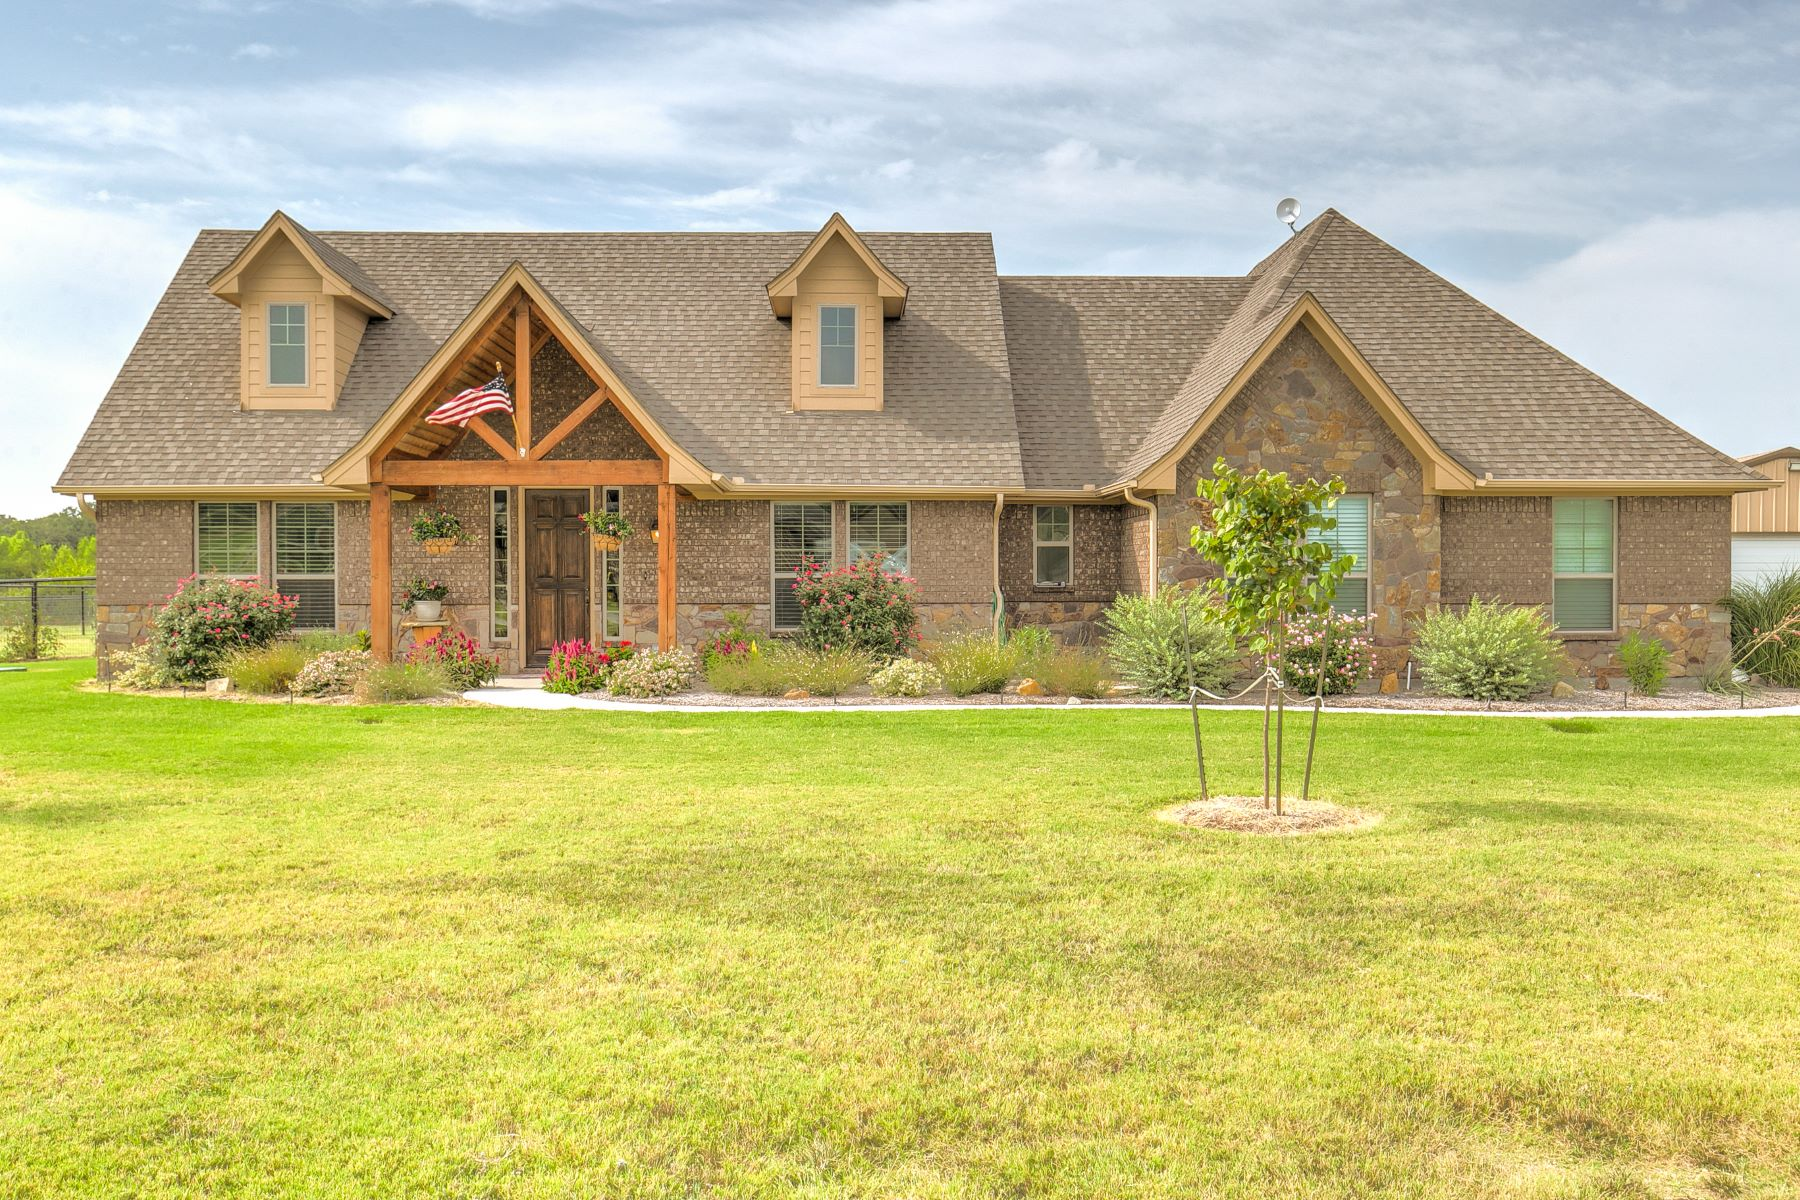 Single Family Homes for Sale at Farmhouse style home has everything needed for a little country living 173 Lavender Lane Springtown, Texas 76082 United States